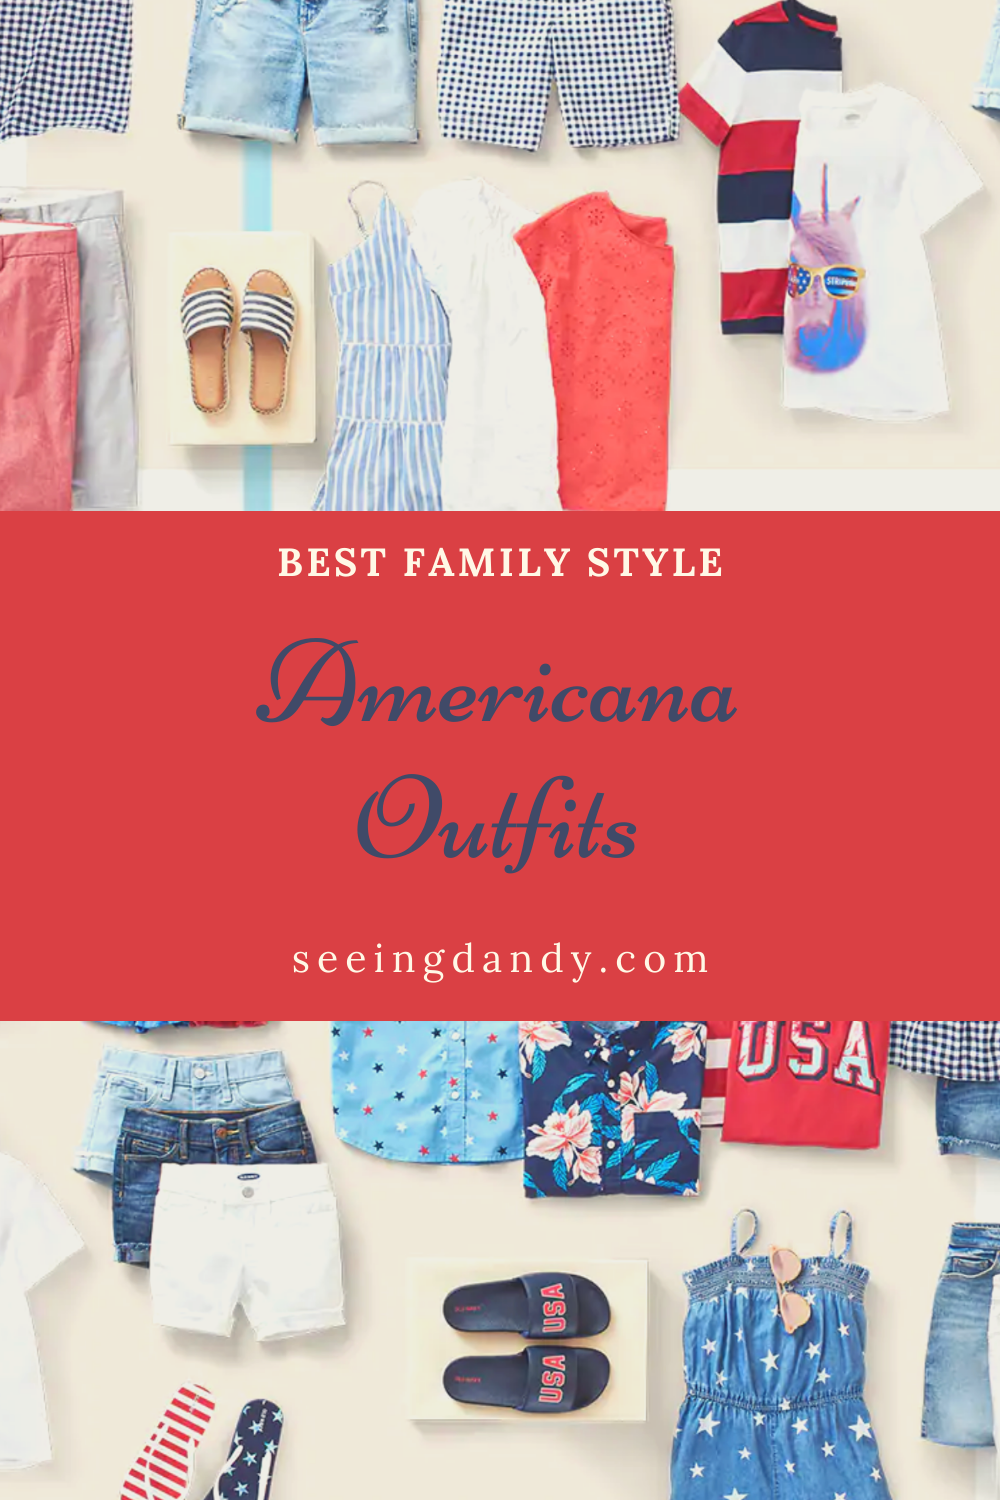 best americana outfits, family style, red white blue clothing